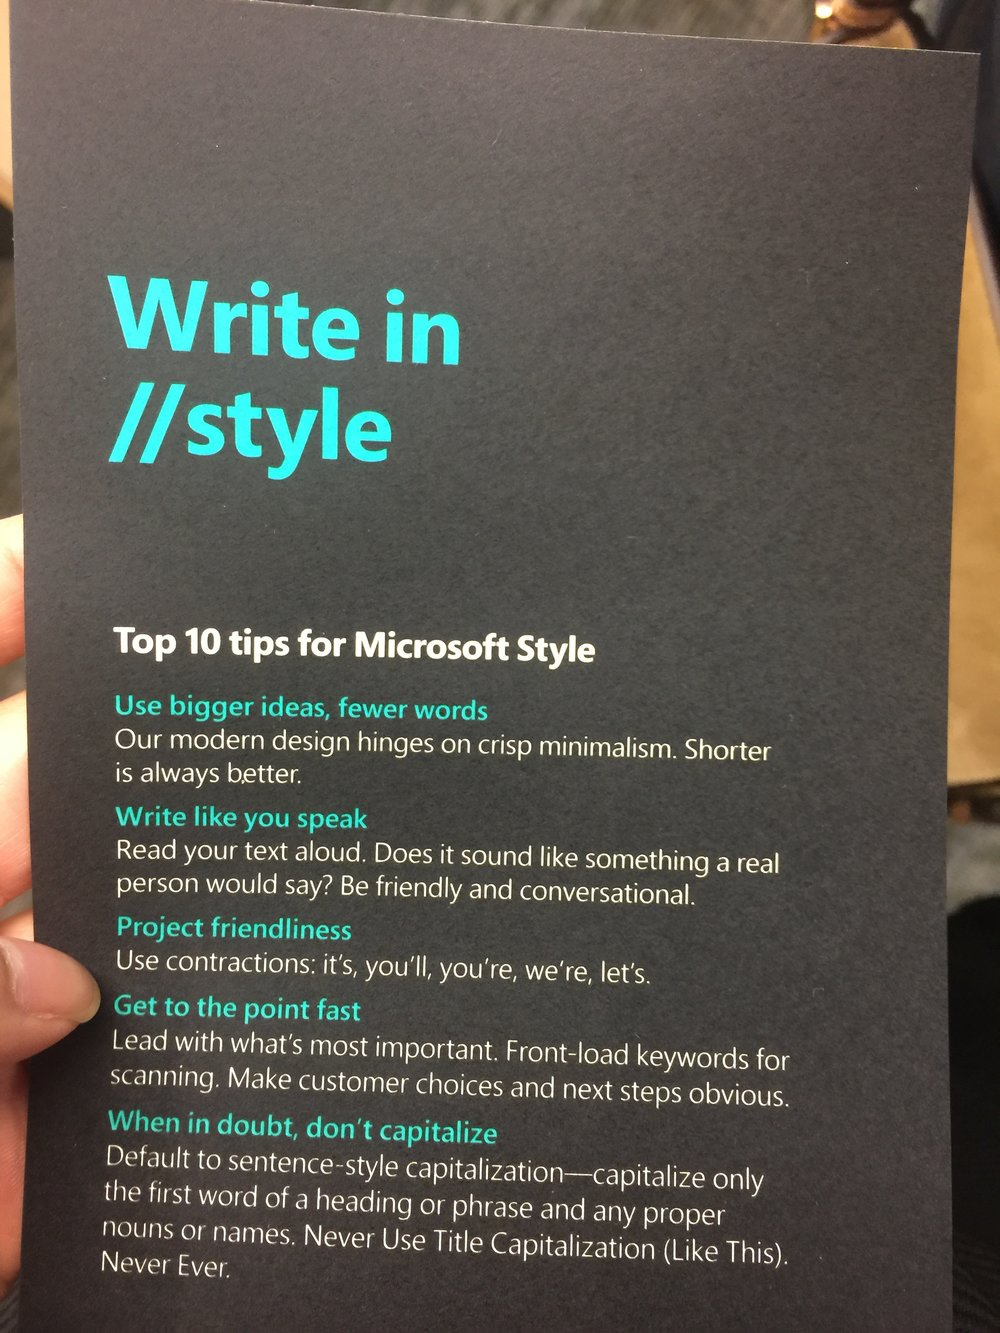 Flyer with Top 10 tips for Microsoft style